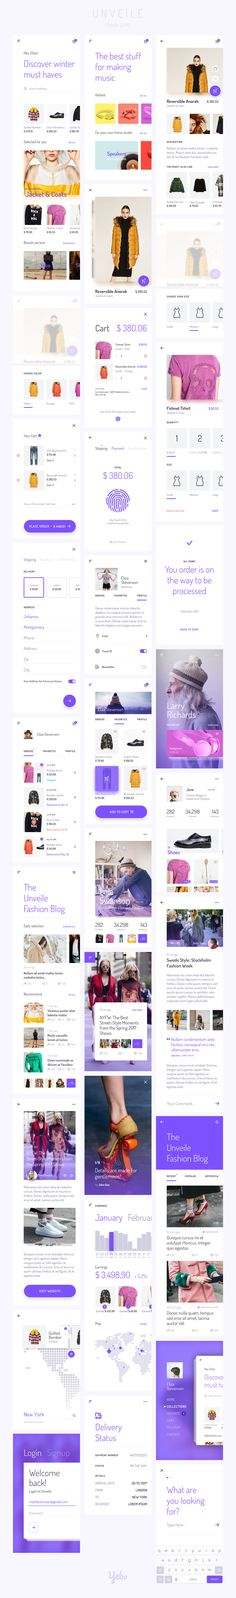 — Products — Unveile Fashion Mobile UI Kit - Love a good success story? Learn how I went from zero to 1 million in sales in 5 months with an e-commerce st Ui Design Mobile, Web Ui Design, Webdesign Inspiration, App Design Inspiration, Application Ui Design, Mobile Application, Ecommerce App, Android App Design, Ios Ui